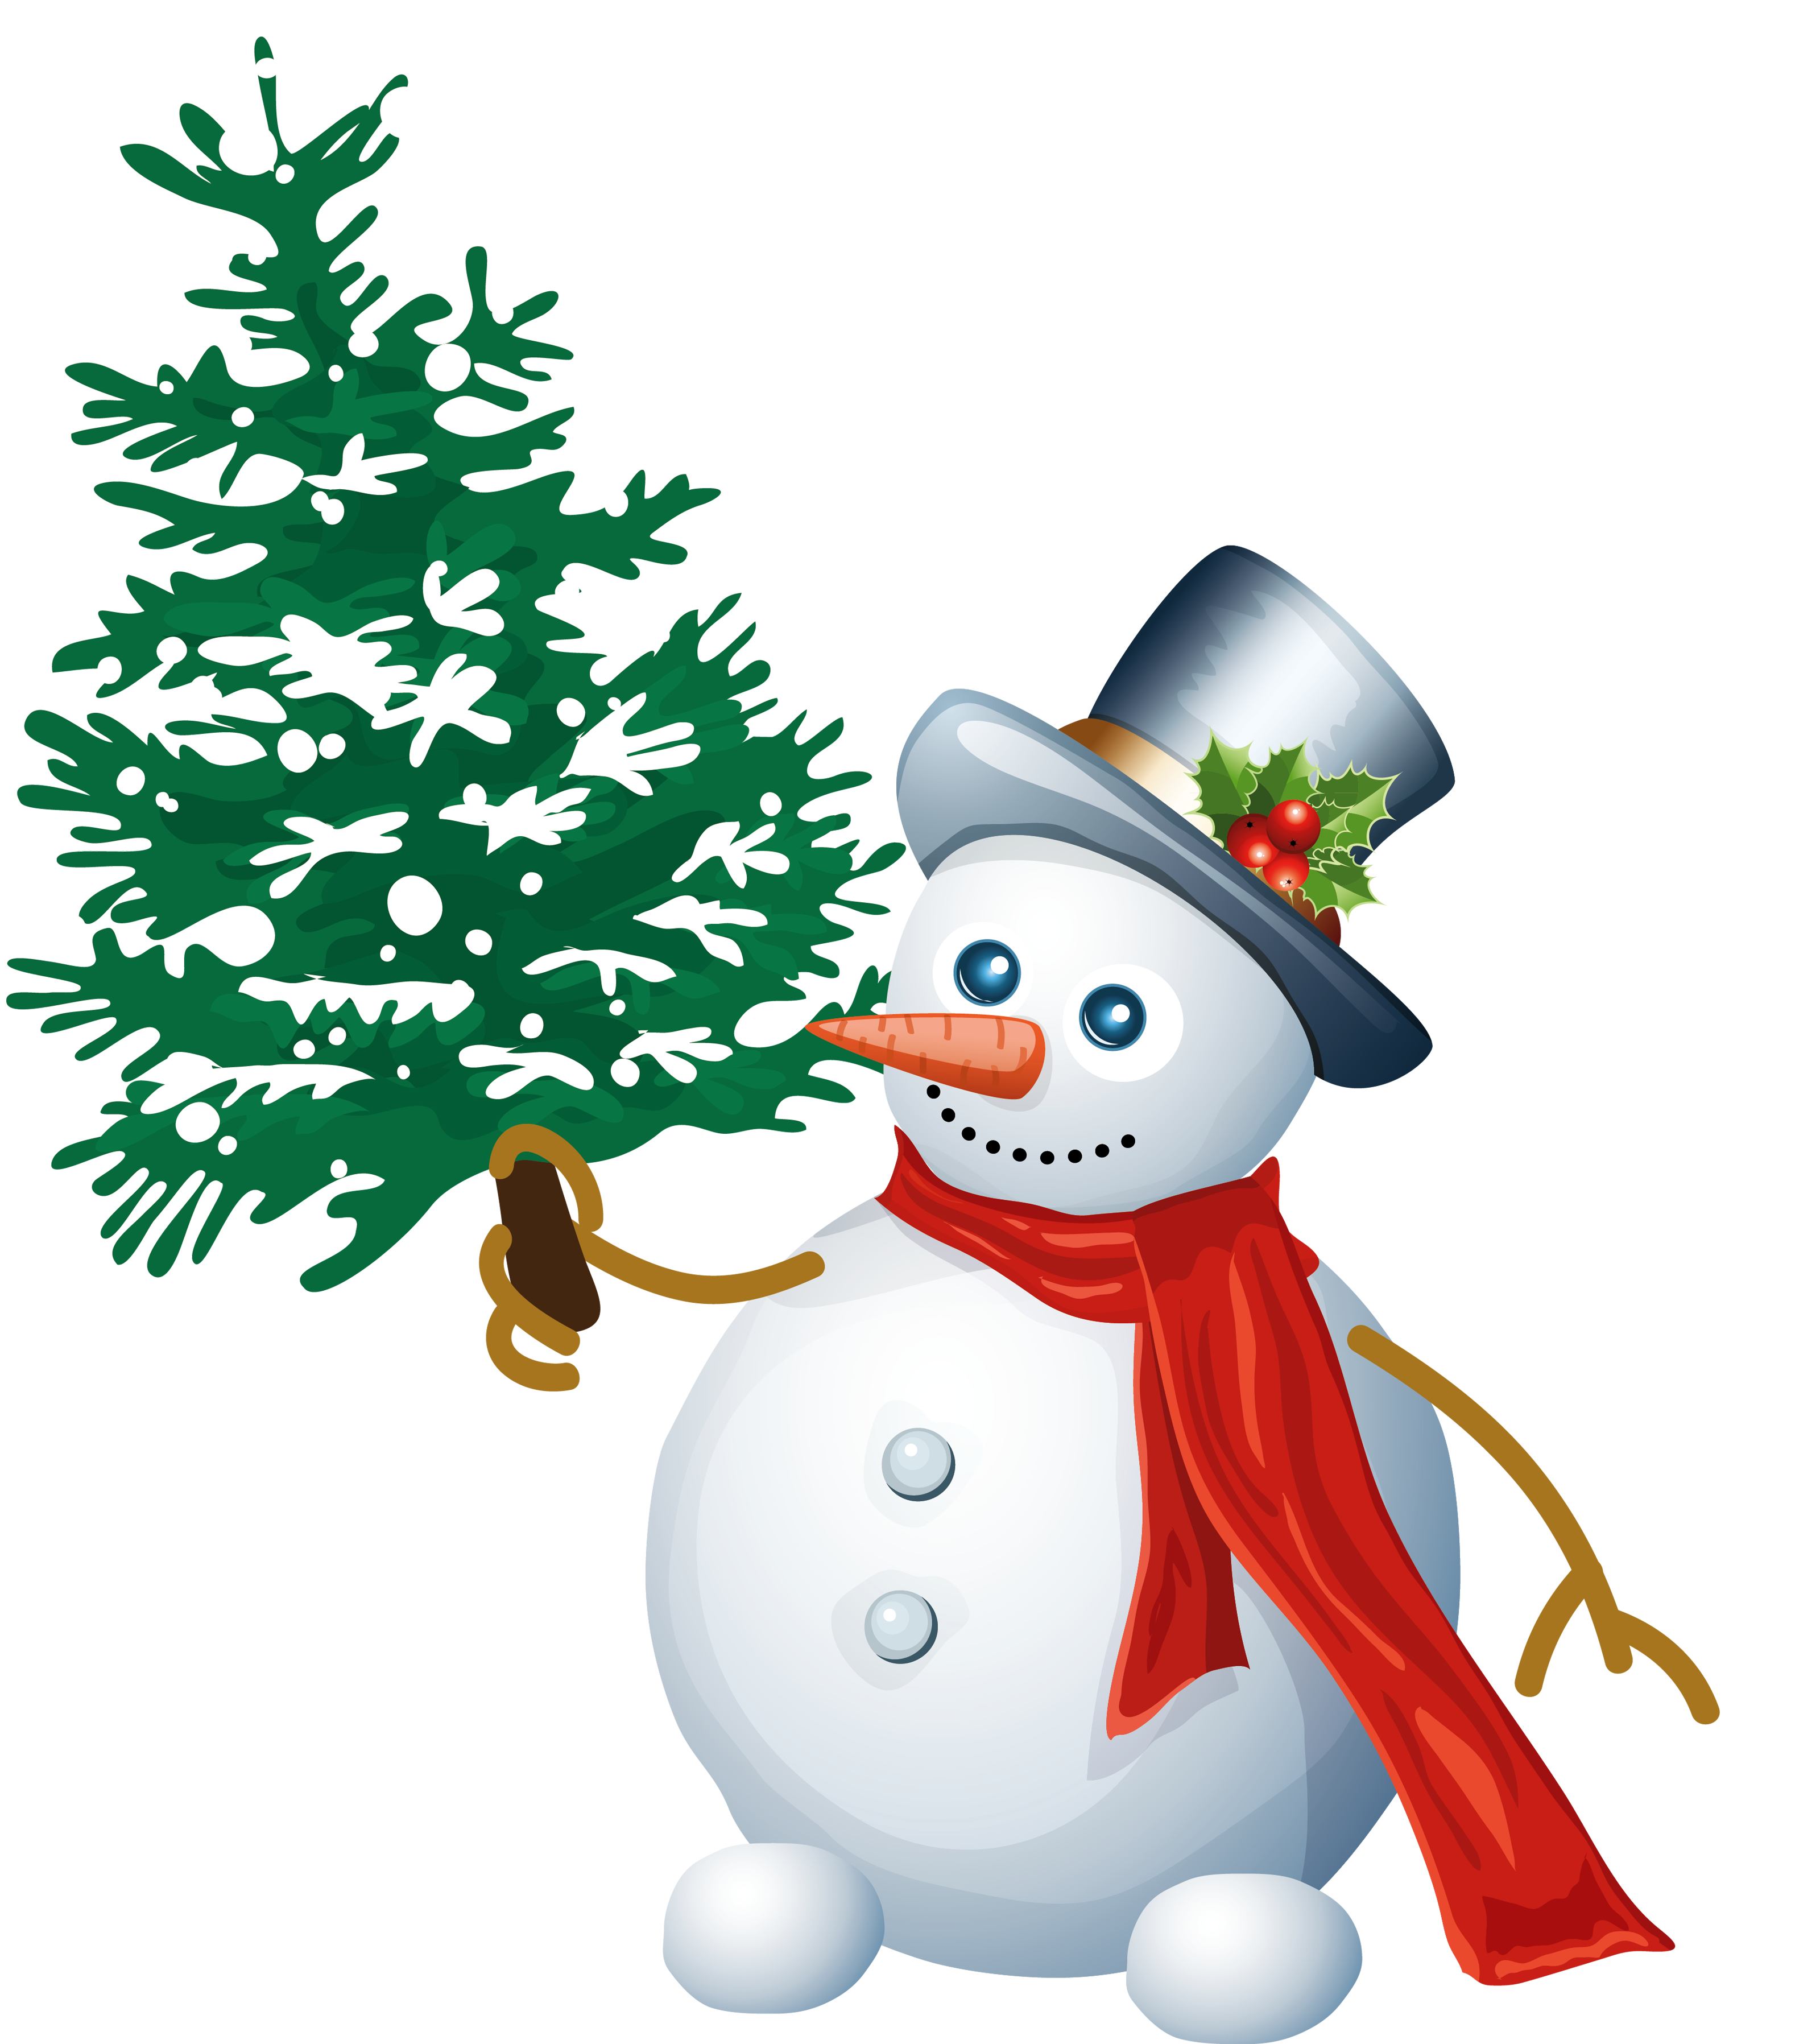 Stamp clipart library. Snowman with tree png